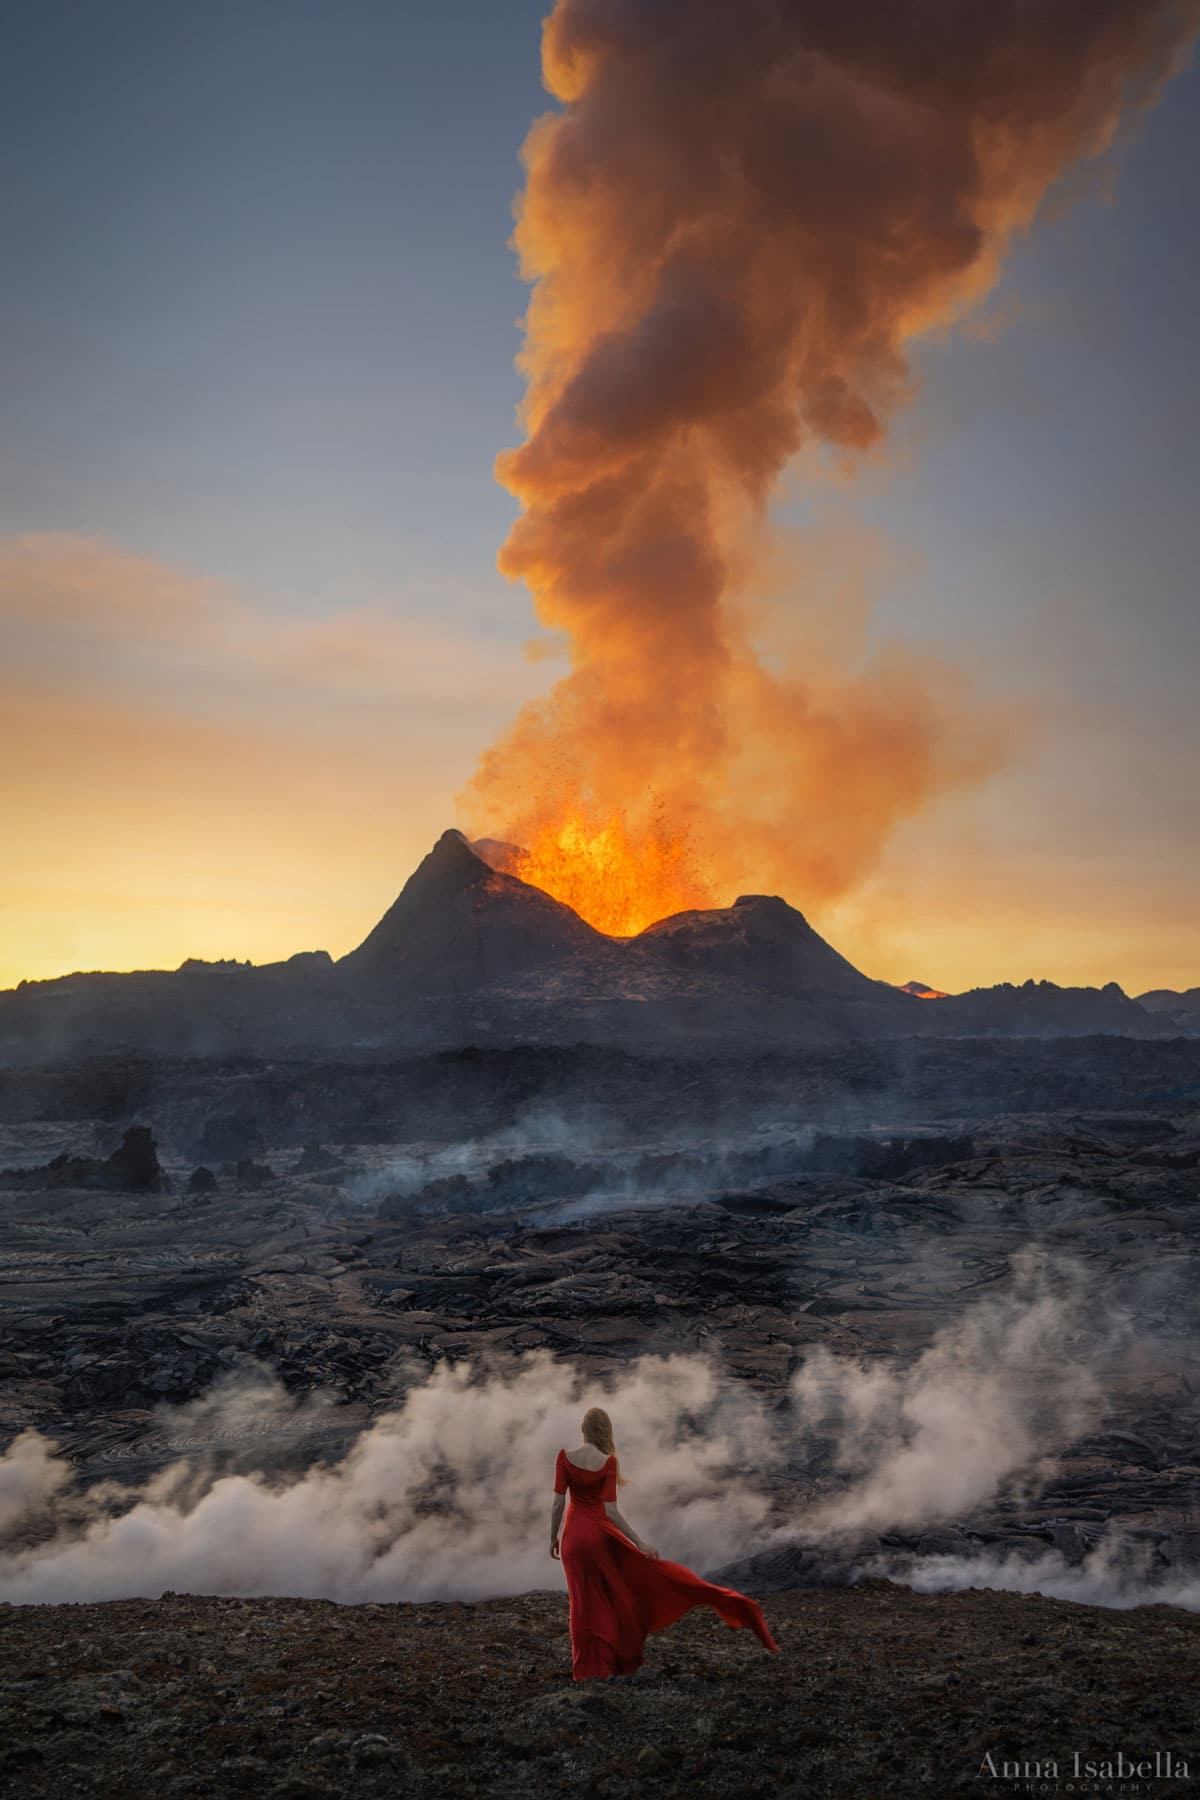 Woman in Red Dress Posing in Front of Fagradalsfjall Volcano in Iceland